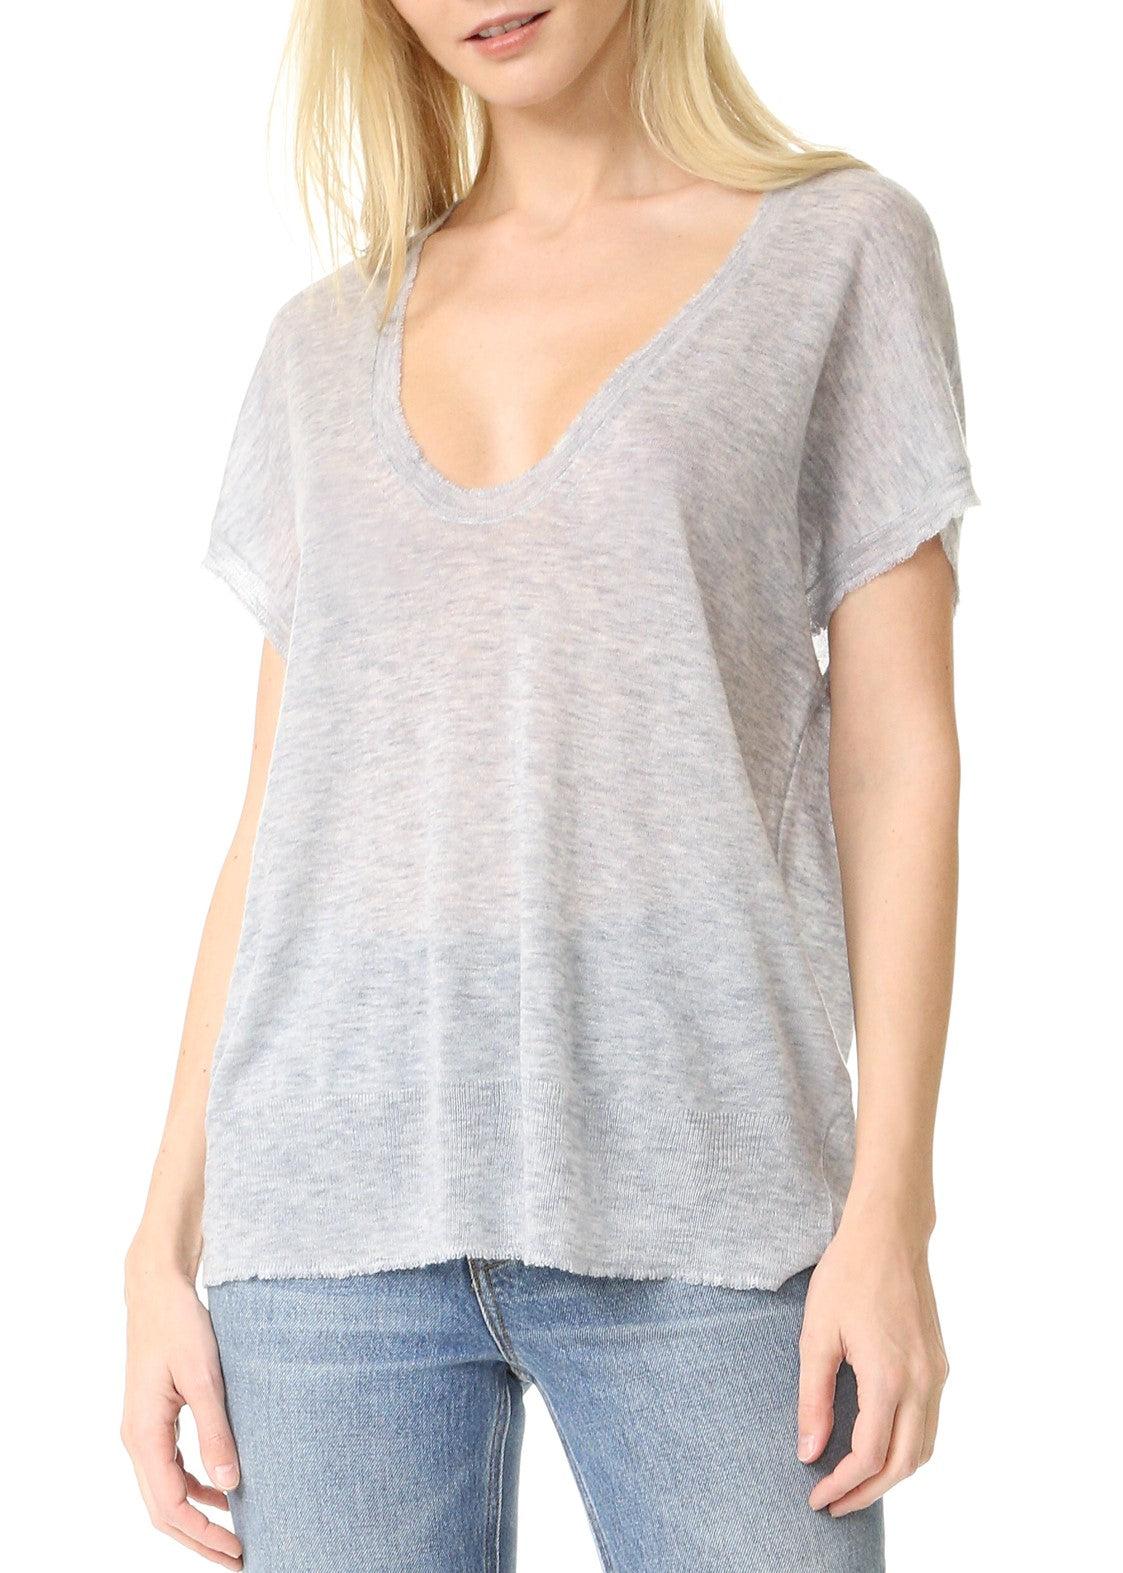 T by Alexander Wang short sleeve scoop tee grey